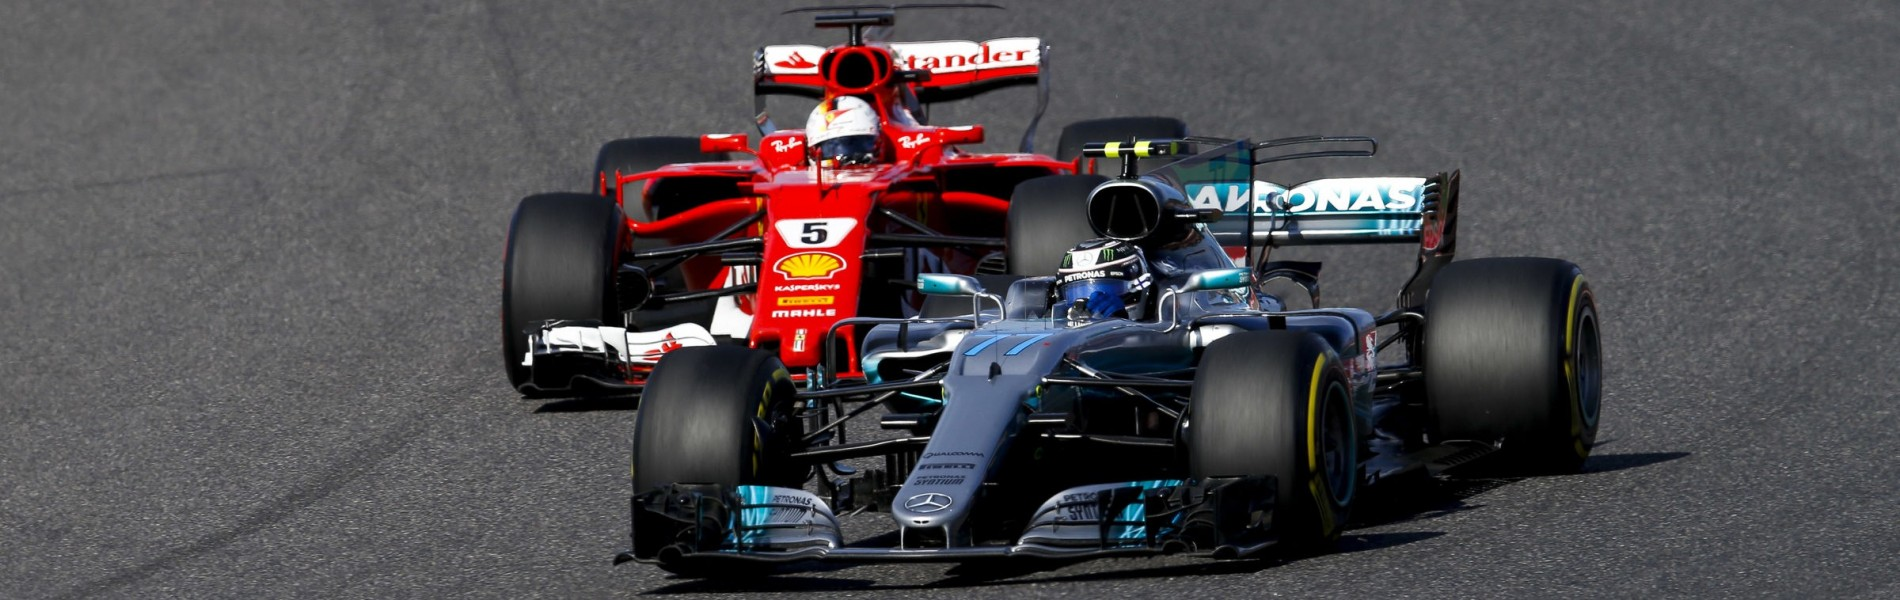 Sunday images from the 2017 Japanese Grand Prix